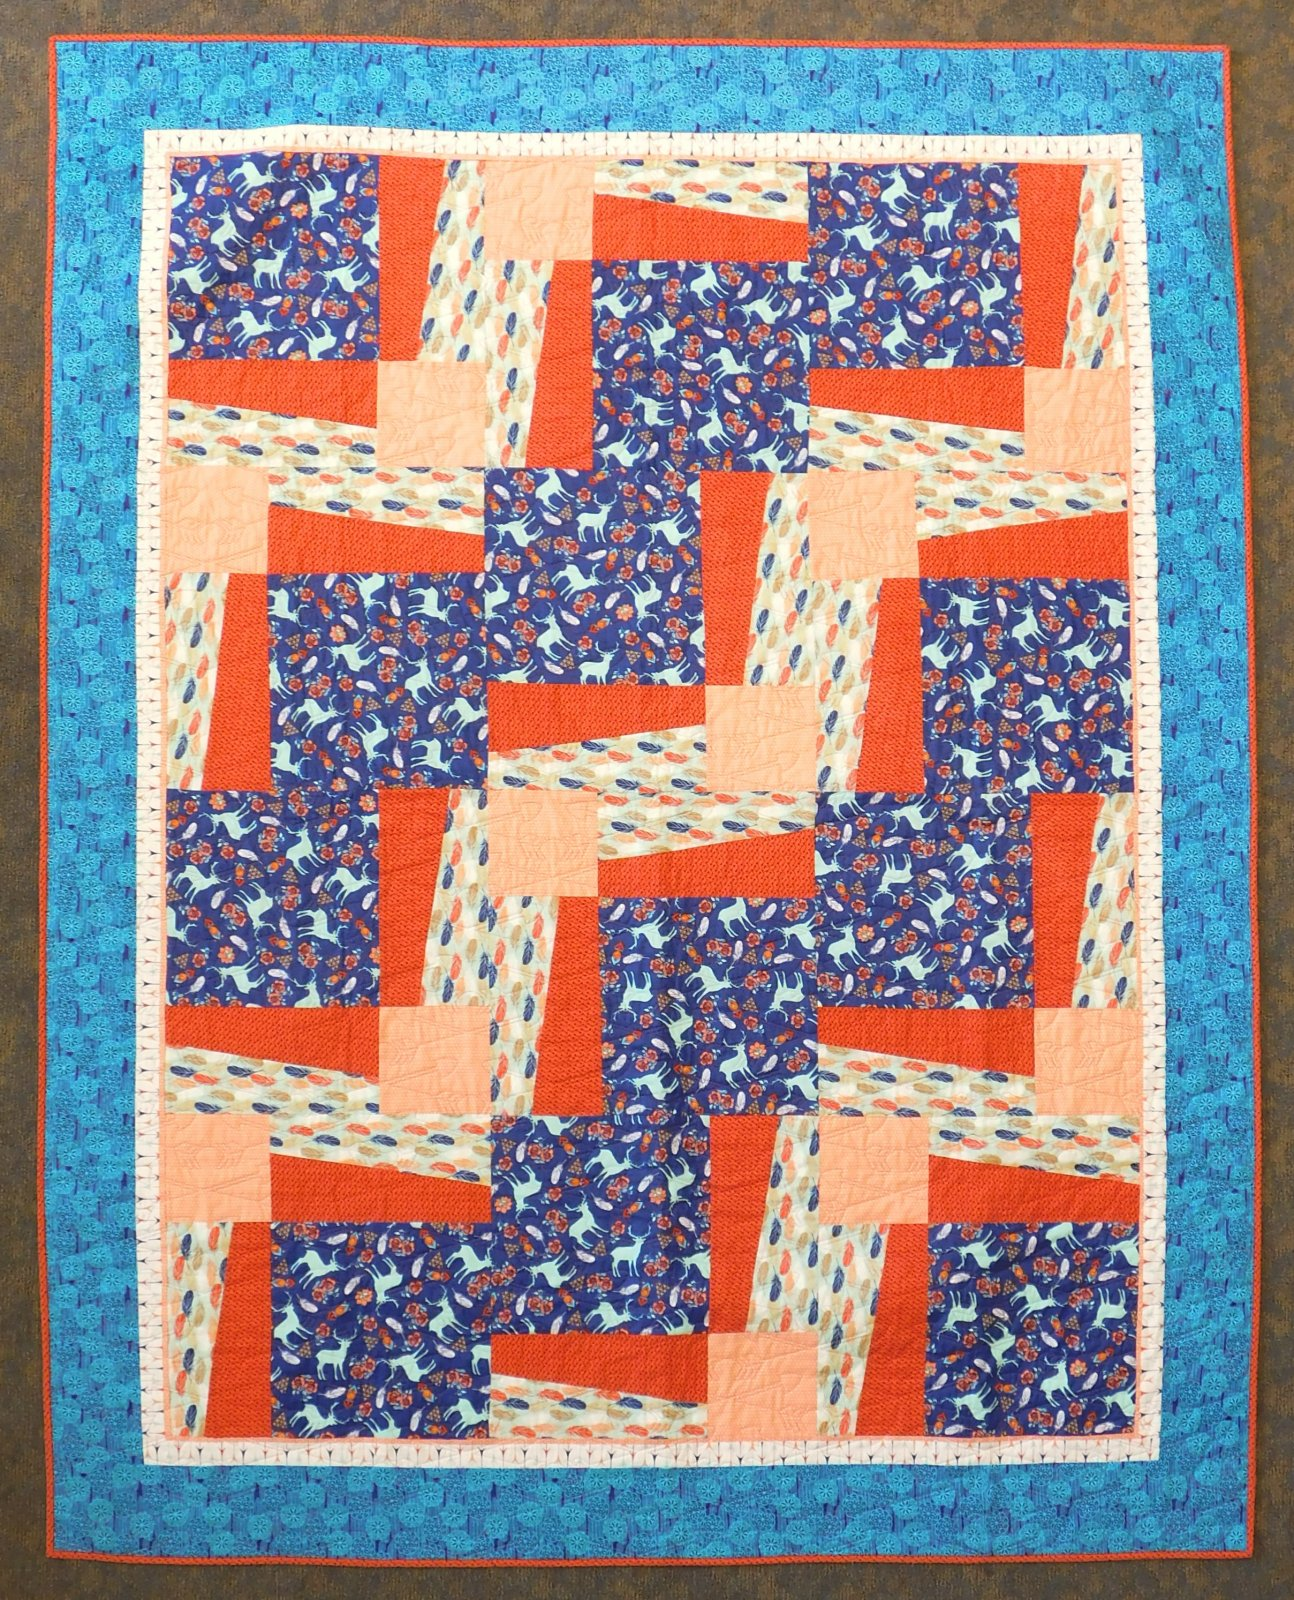 Pachua Island - Finished Quilt - 69 x 87 - Twin Size